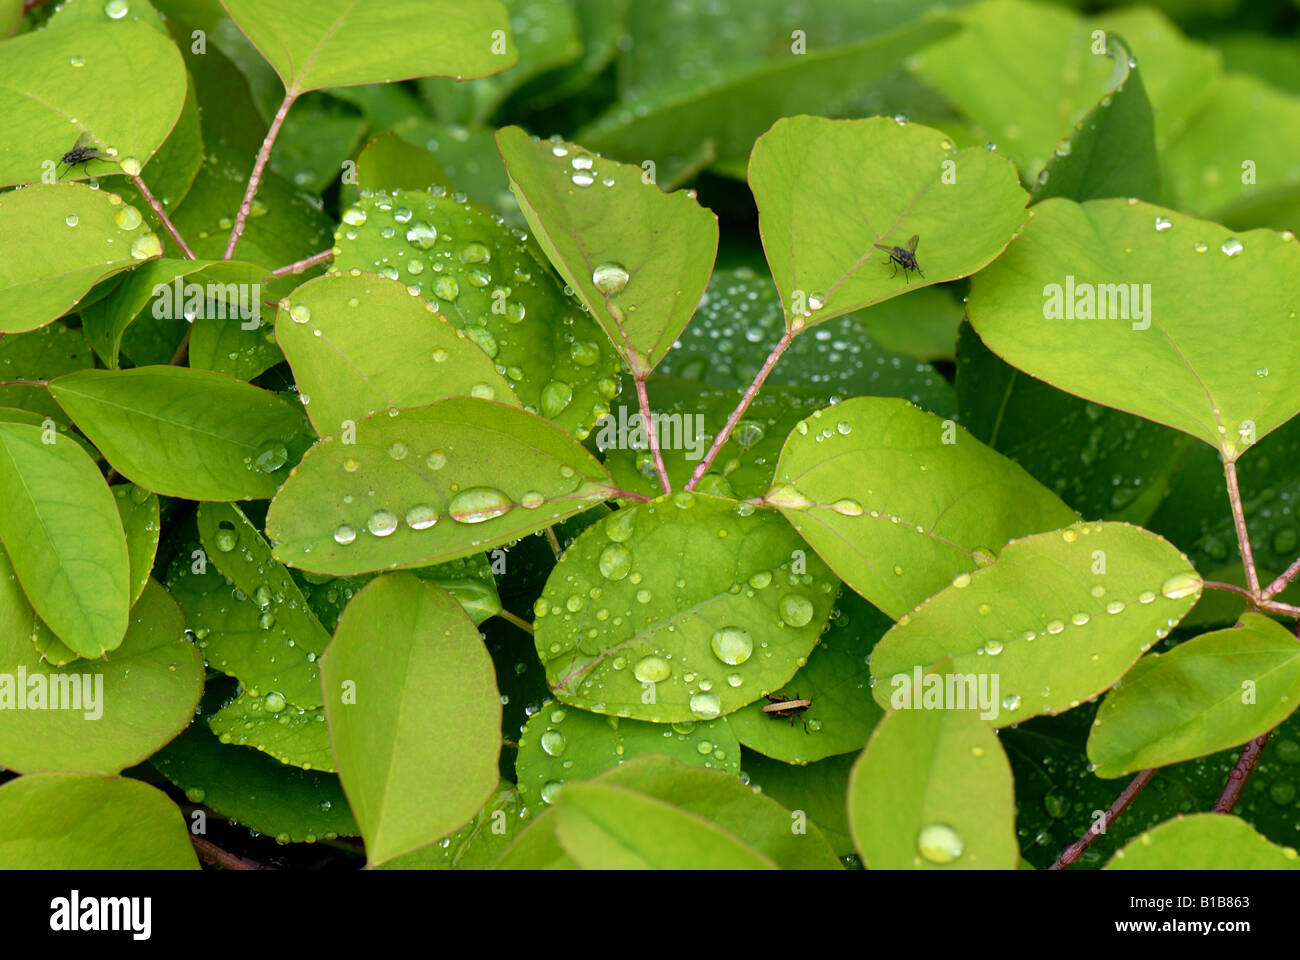 Chocolate vine stock photos chocolate vine stock images alamy chocolate vine akebia quinata with rainwater droplets after early morning shower stock image mightylinksfo